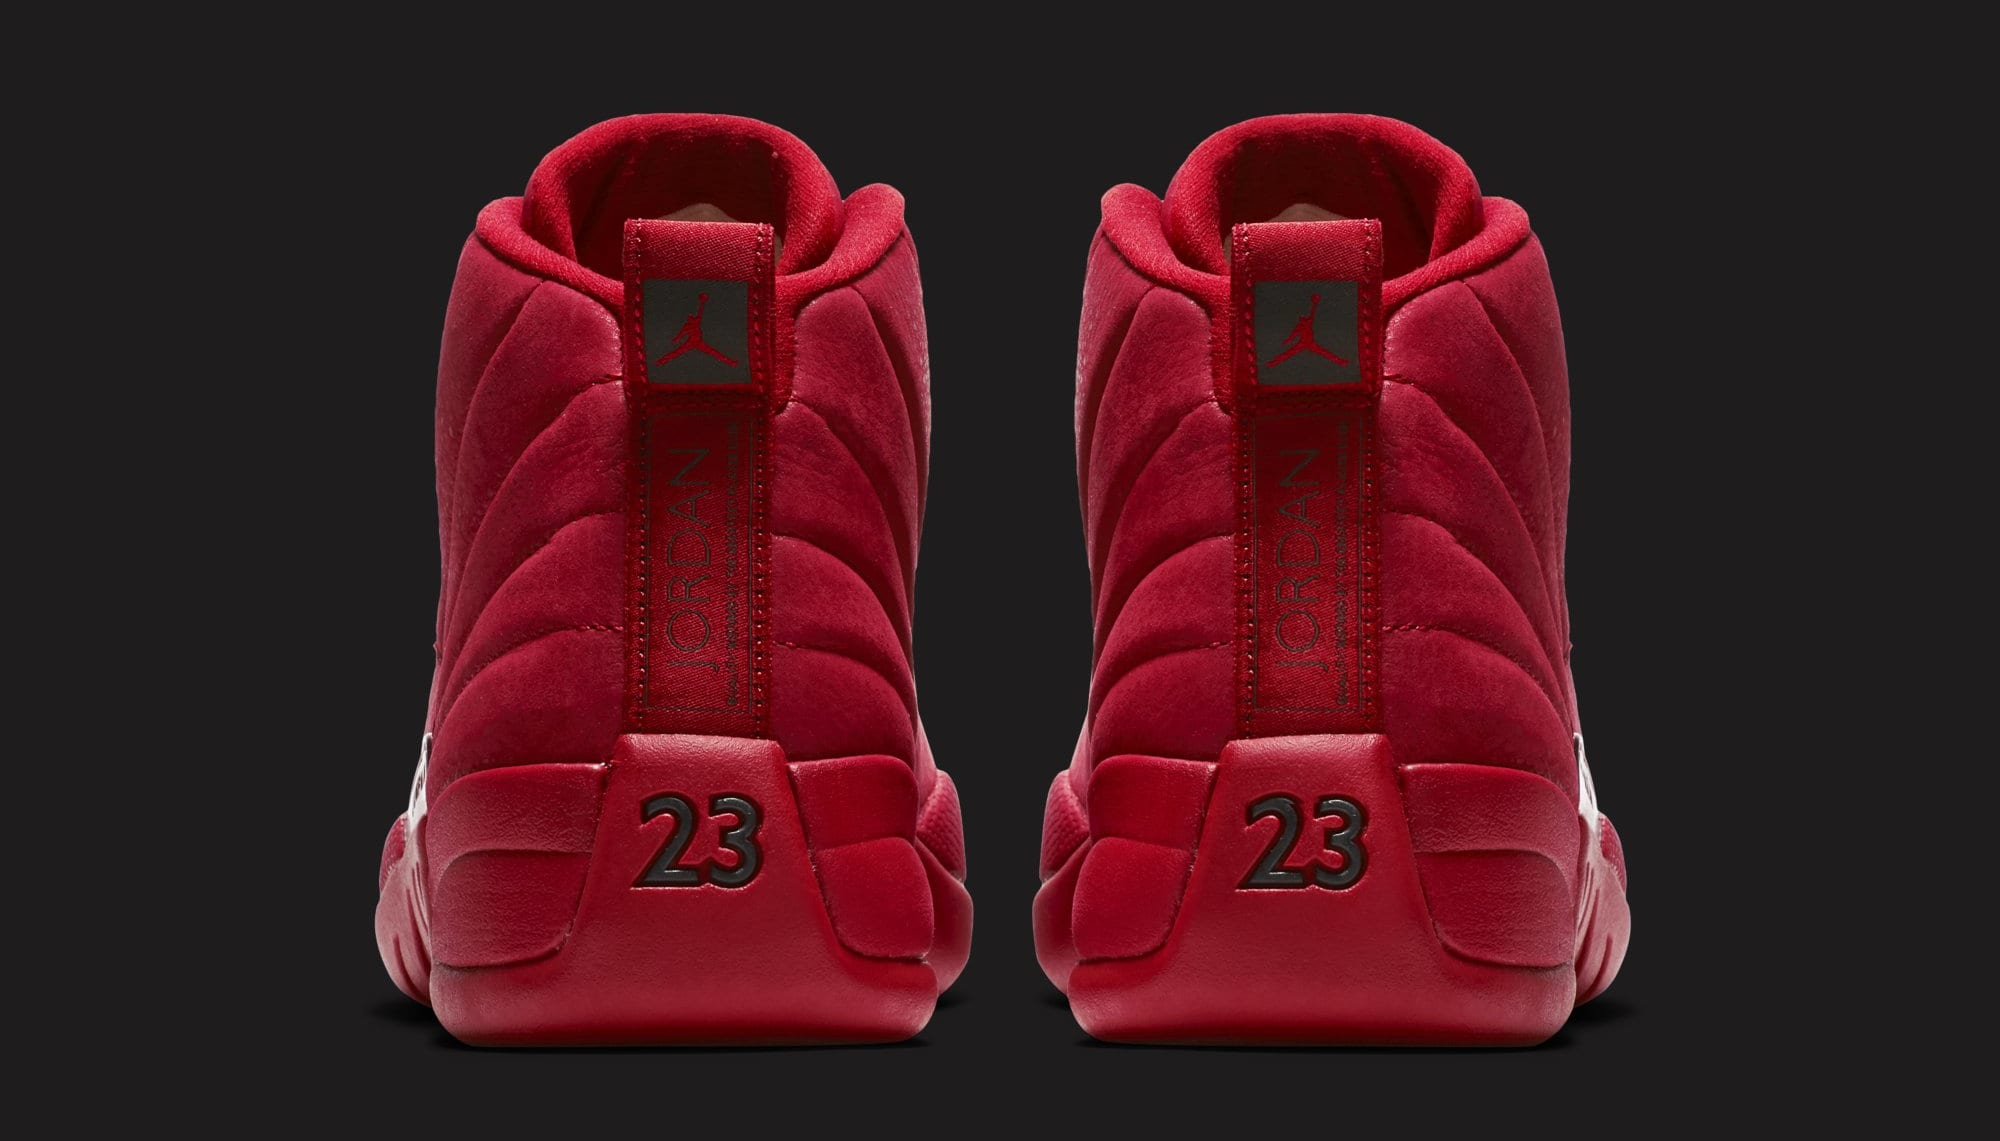 52bf6265 Air Jordan 12 Gym Red/Gym Red-Black 130690-601 University Blue/Metallic  Gold-Black 130690-430 Release Date | Sole Collector